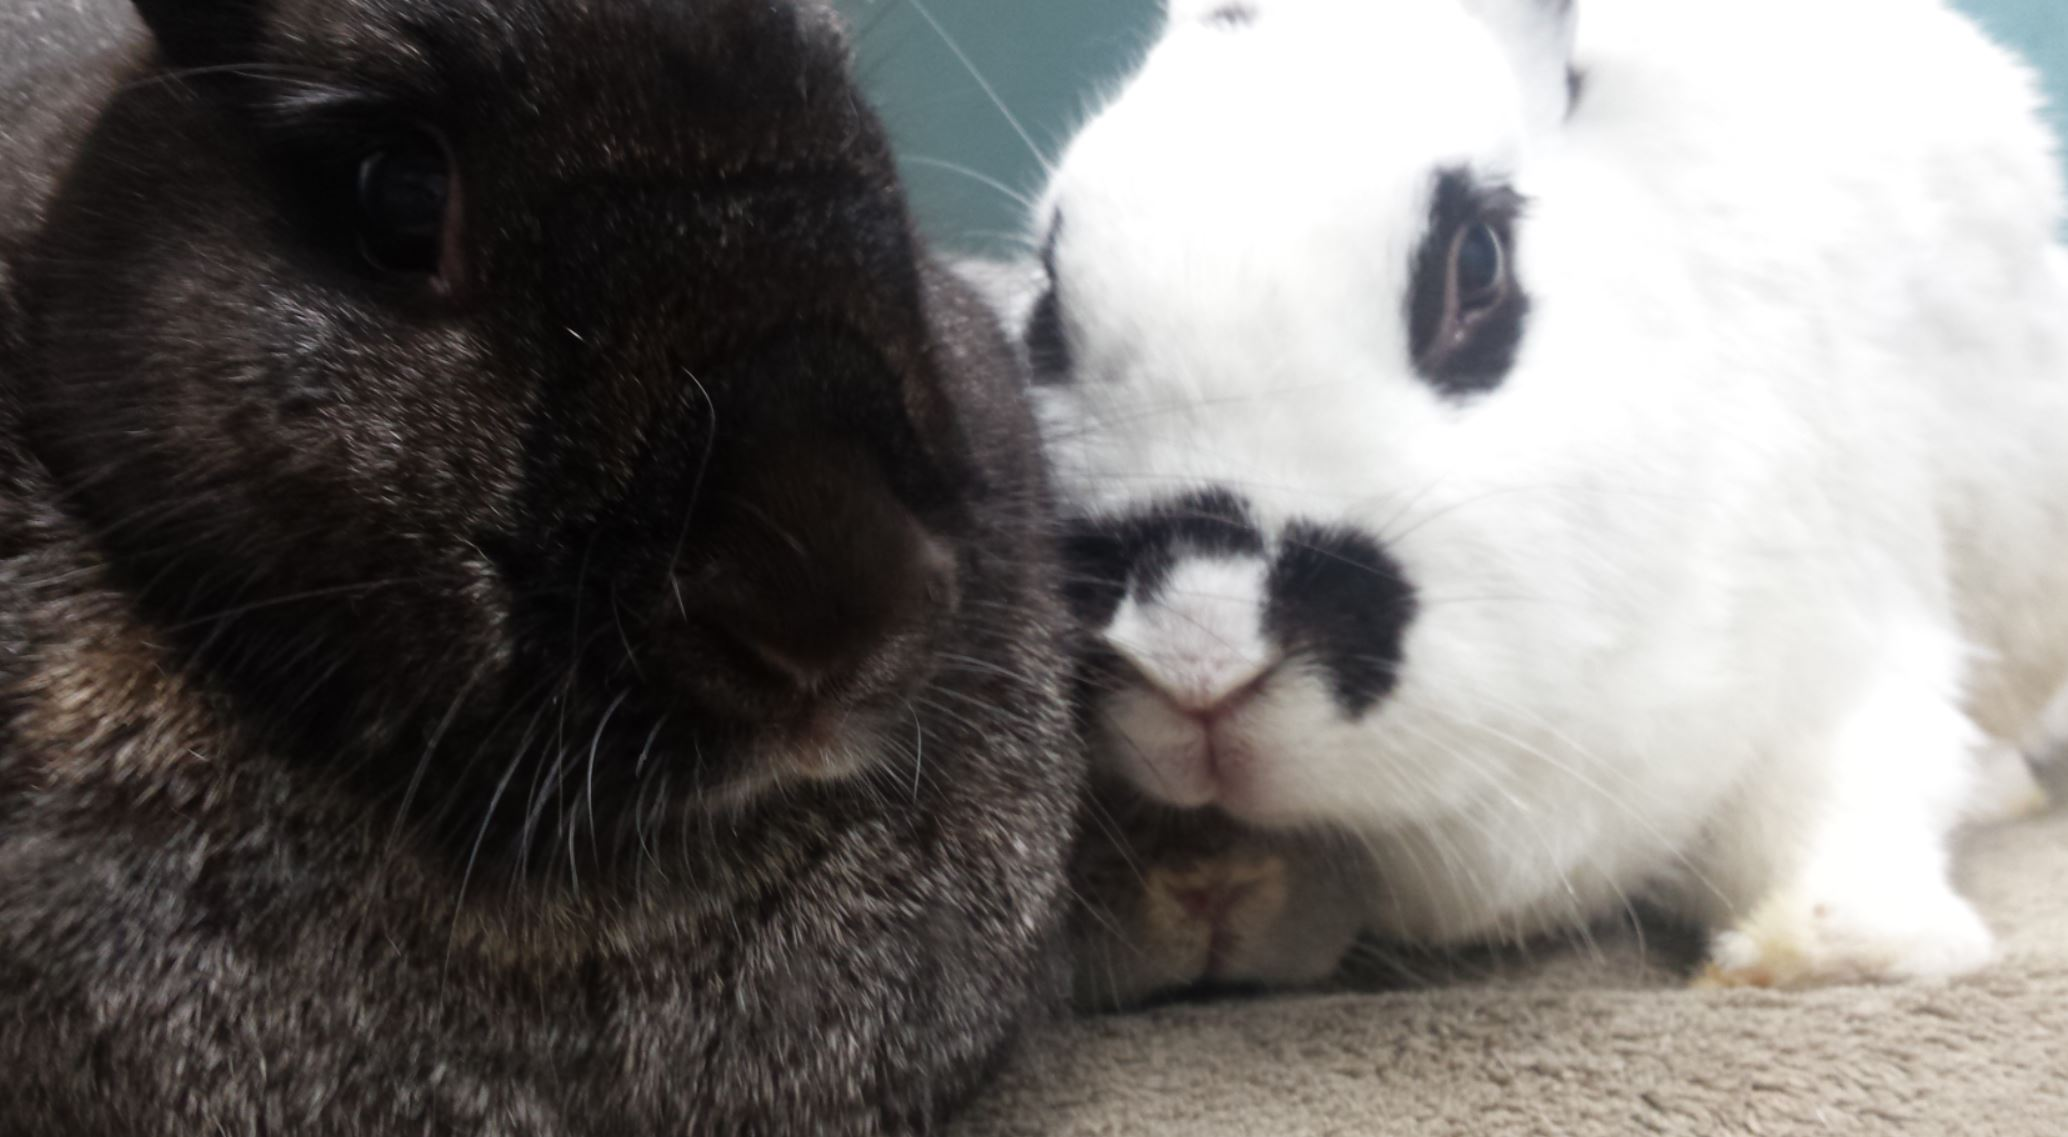 three bunnies snuggled together in intimacy